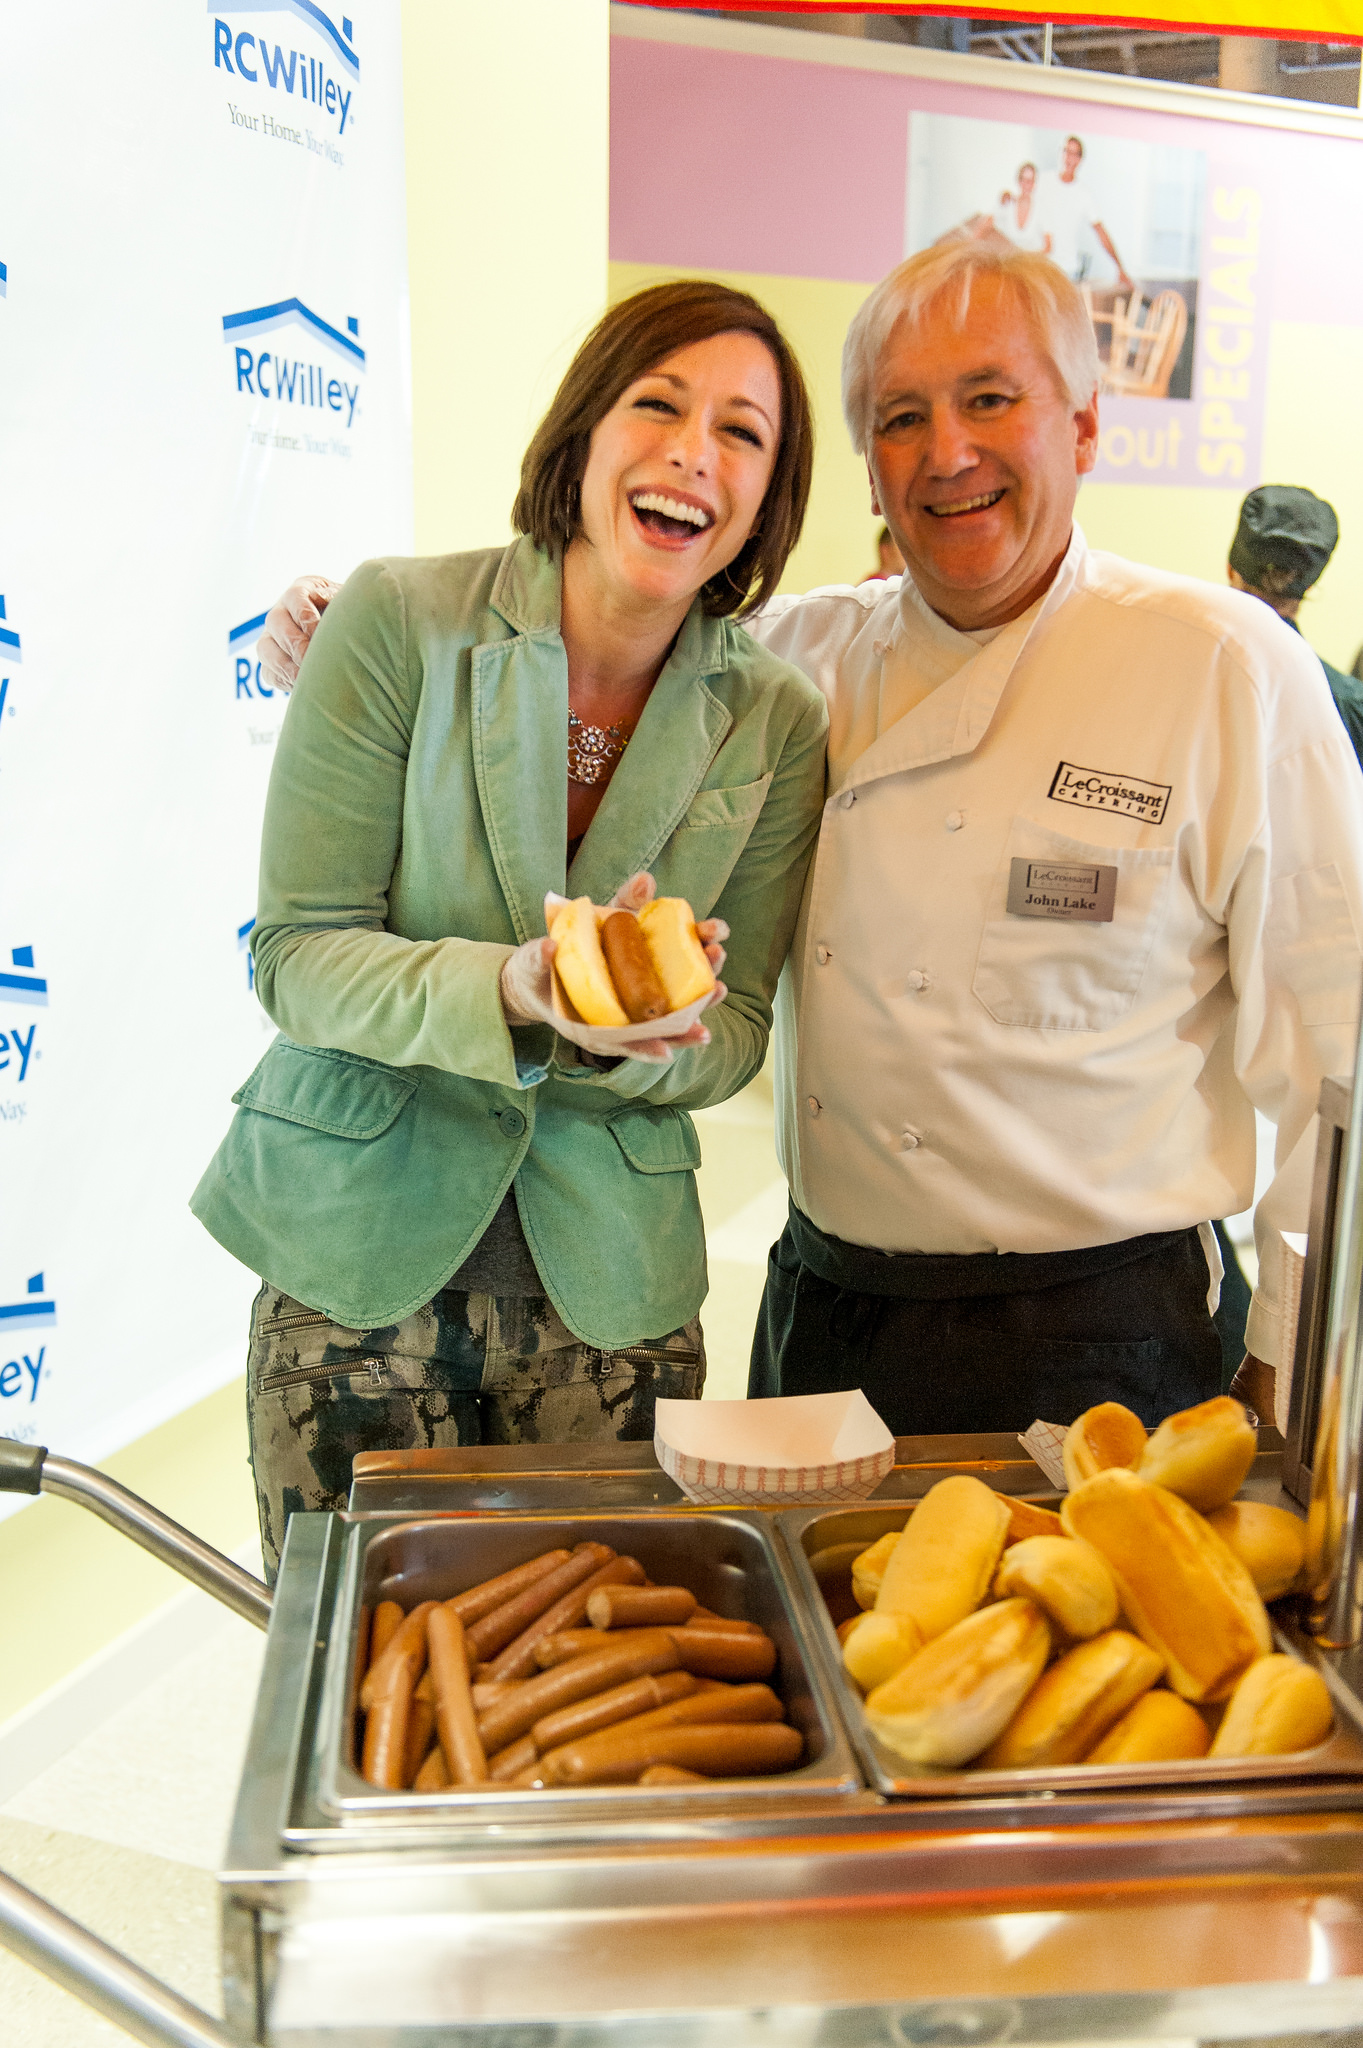 Lux Catering and Events co-owner, John Lake, with RC Willey spokeswoman Paige Davis enjoying our gourmet hot dogs.  Celebrate National Hot Dog Day with Gourmet Hot Dogs! Celebrate National Hot Dog Day with Gourmet Hot Dogs! 15357113974 49a95ee8f1 k